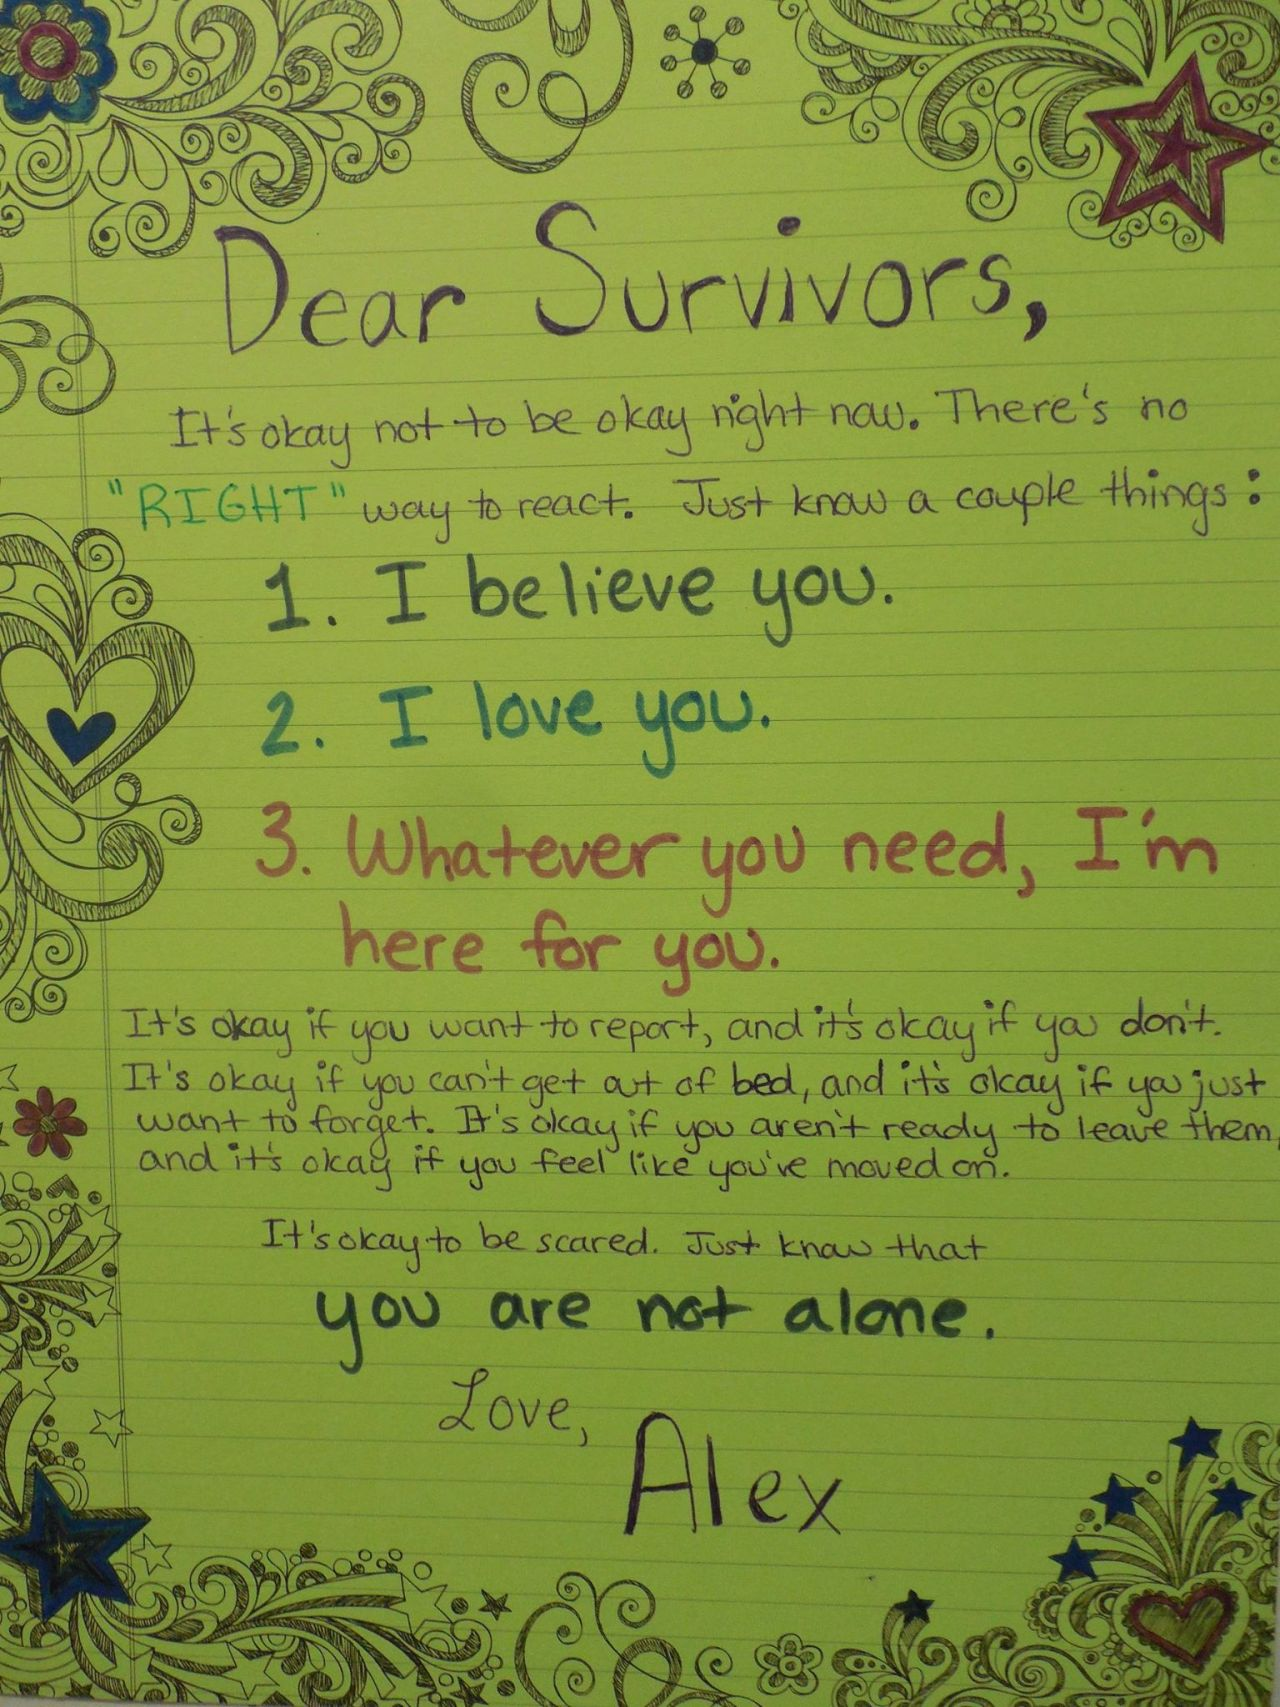 """Dear Survivors,  It's okay not to be okay right now. There's no """"RIGHT"""" way to react. Just know a couple things:  1. I believe you. 2. I love you. 3. Whatever you need, I'm here for you.  It's okay if you want to report, and it's okay if you don't. It's okay if you can't get out of bed, and it's okay if you just want to forget. It's okay if you aren't ready to leave and it's okay if you feel like you've moved on.  It's okay to be scared.  Just know that you are not alone.  Love,  Alex"""